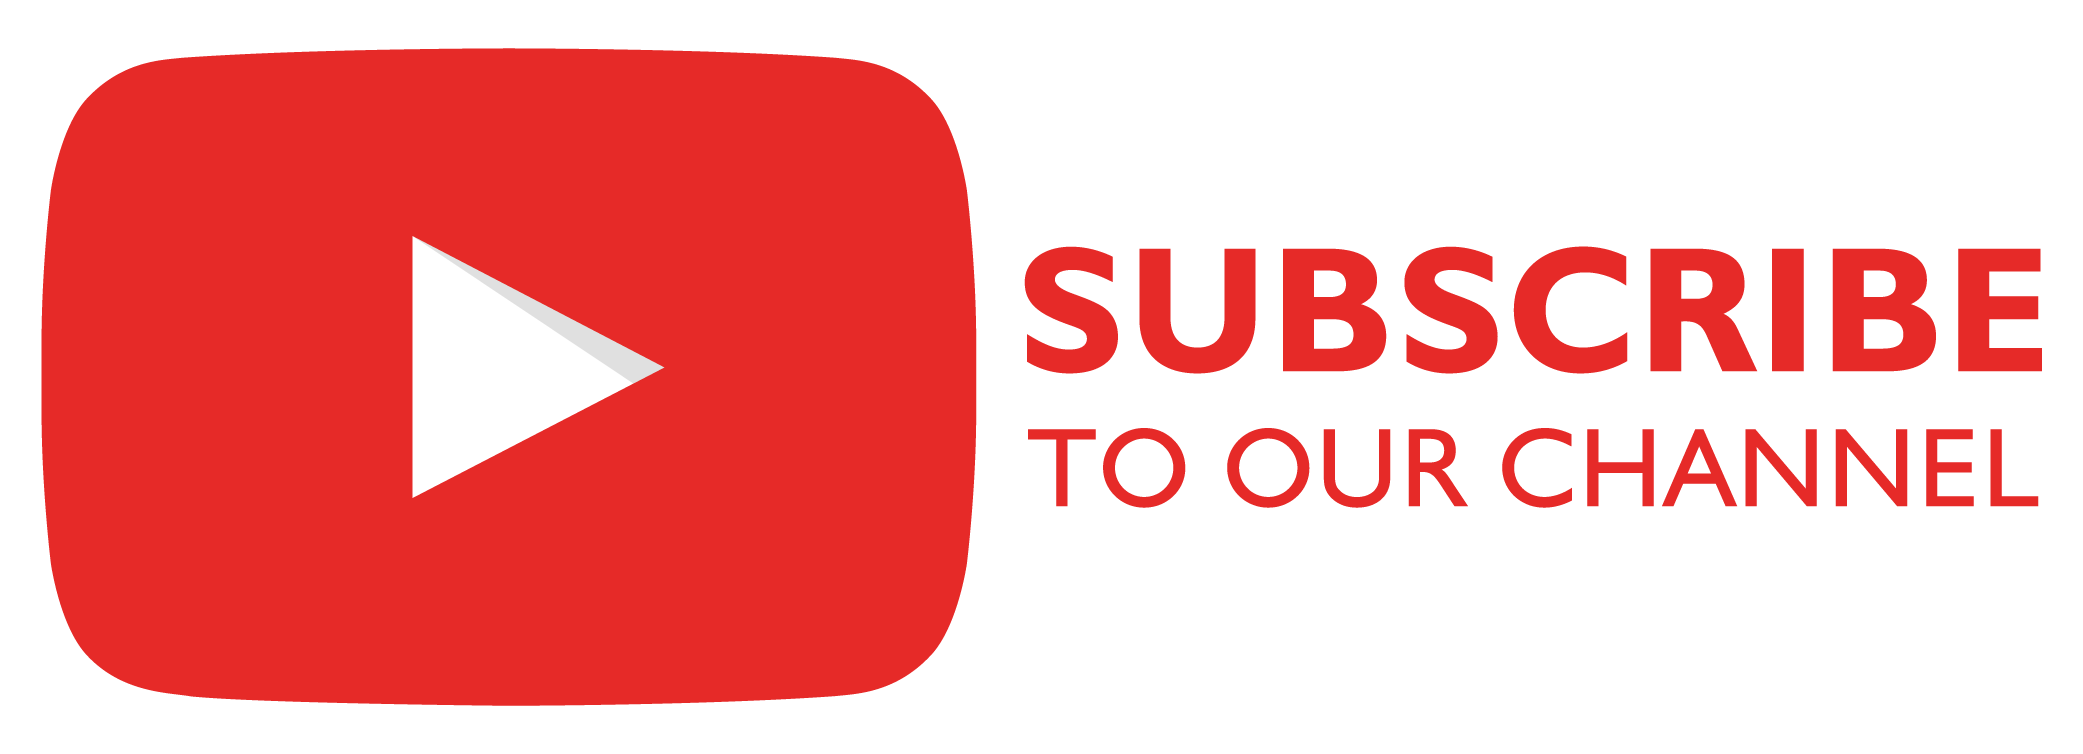 Youtube subscribe logo png. File clipart transparentpng